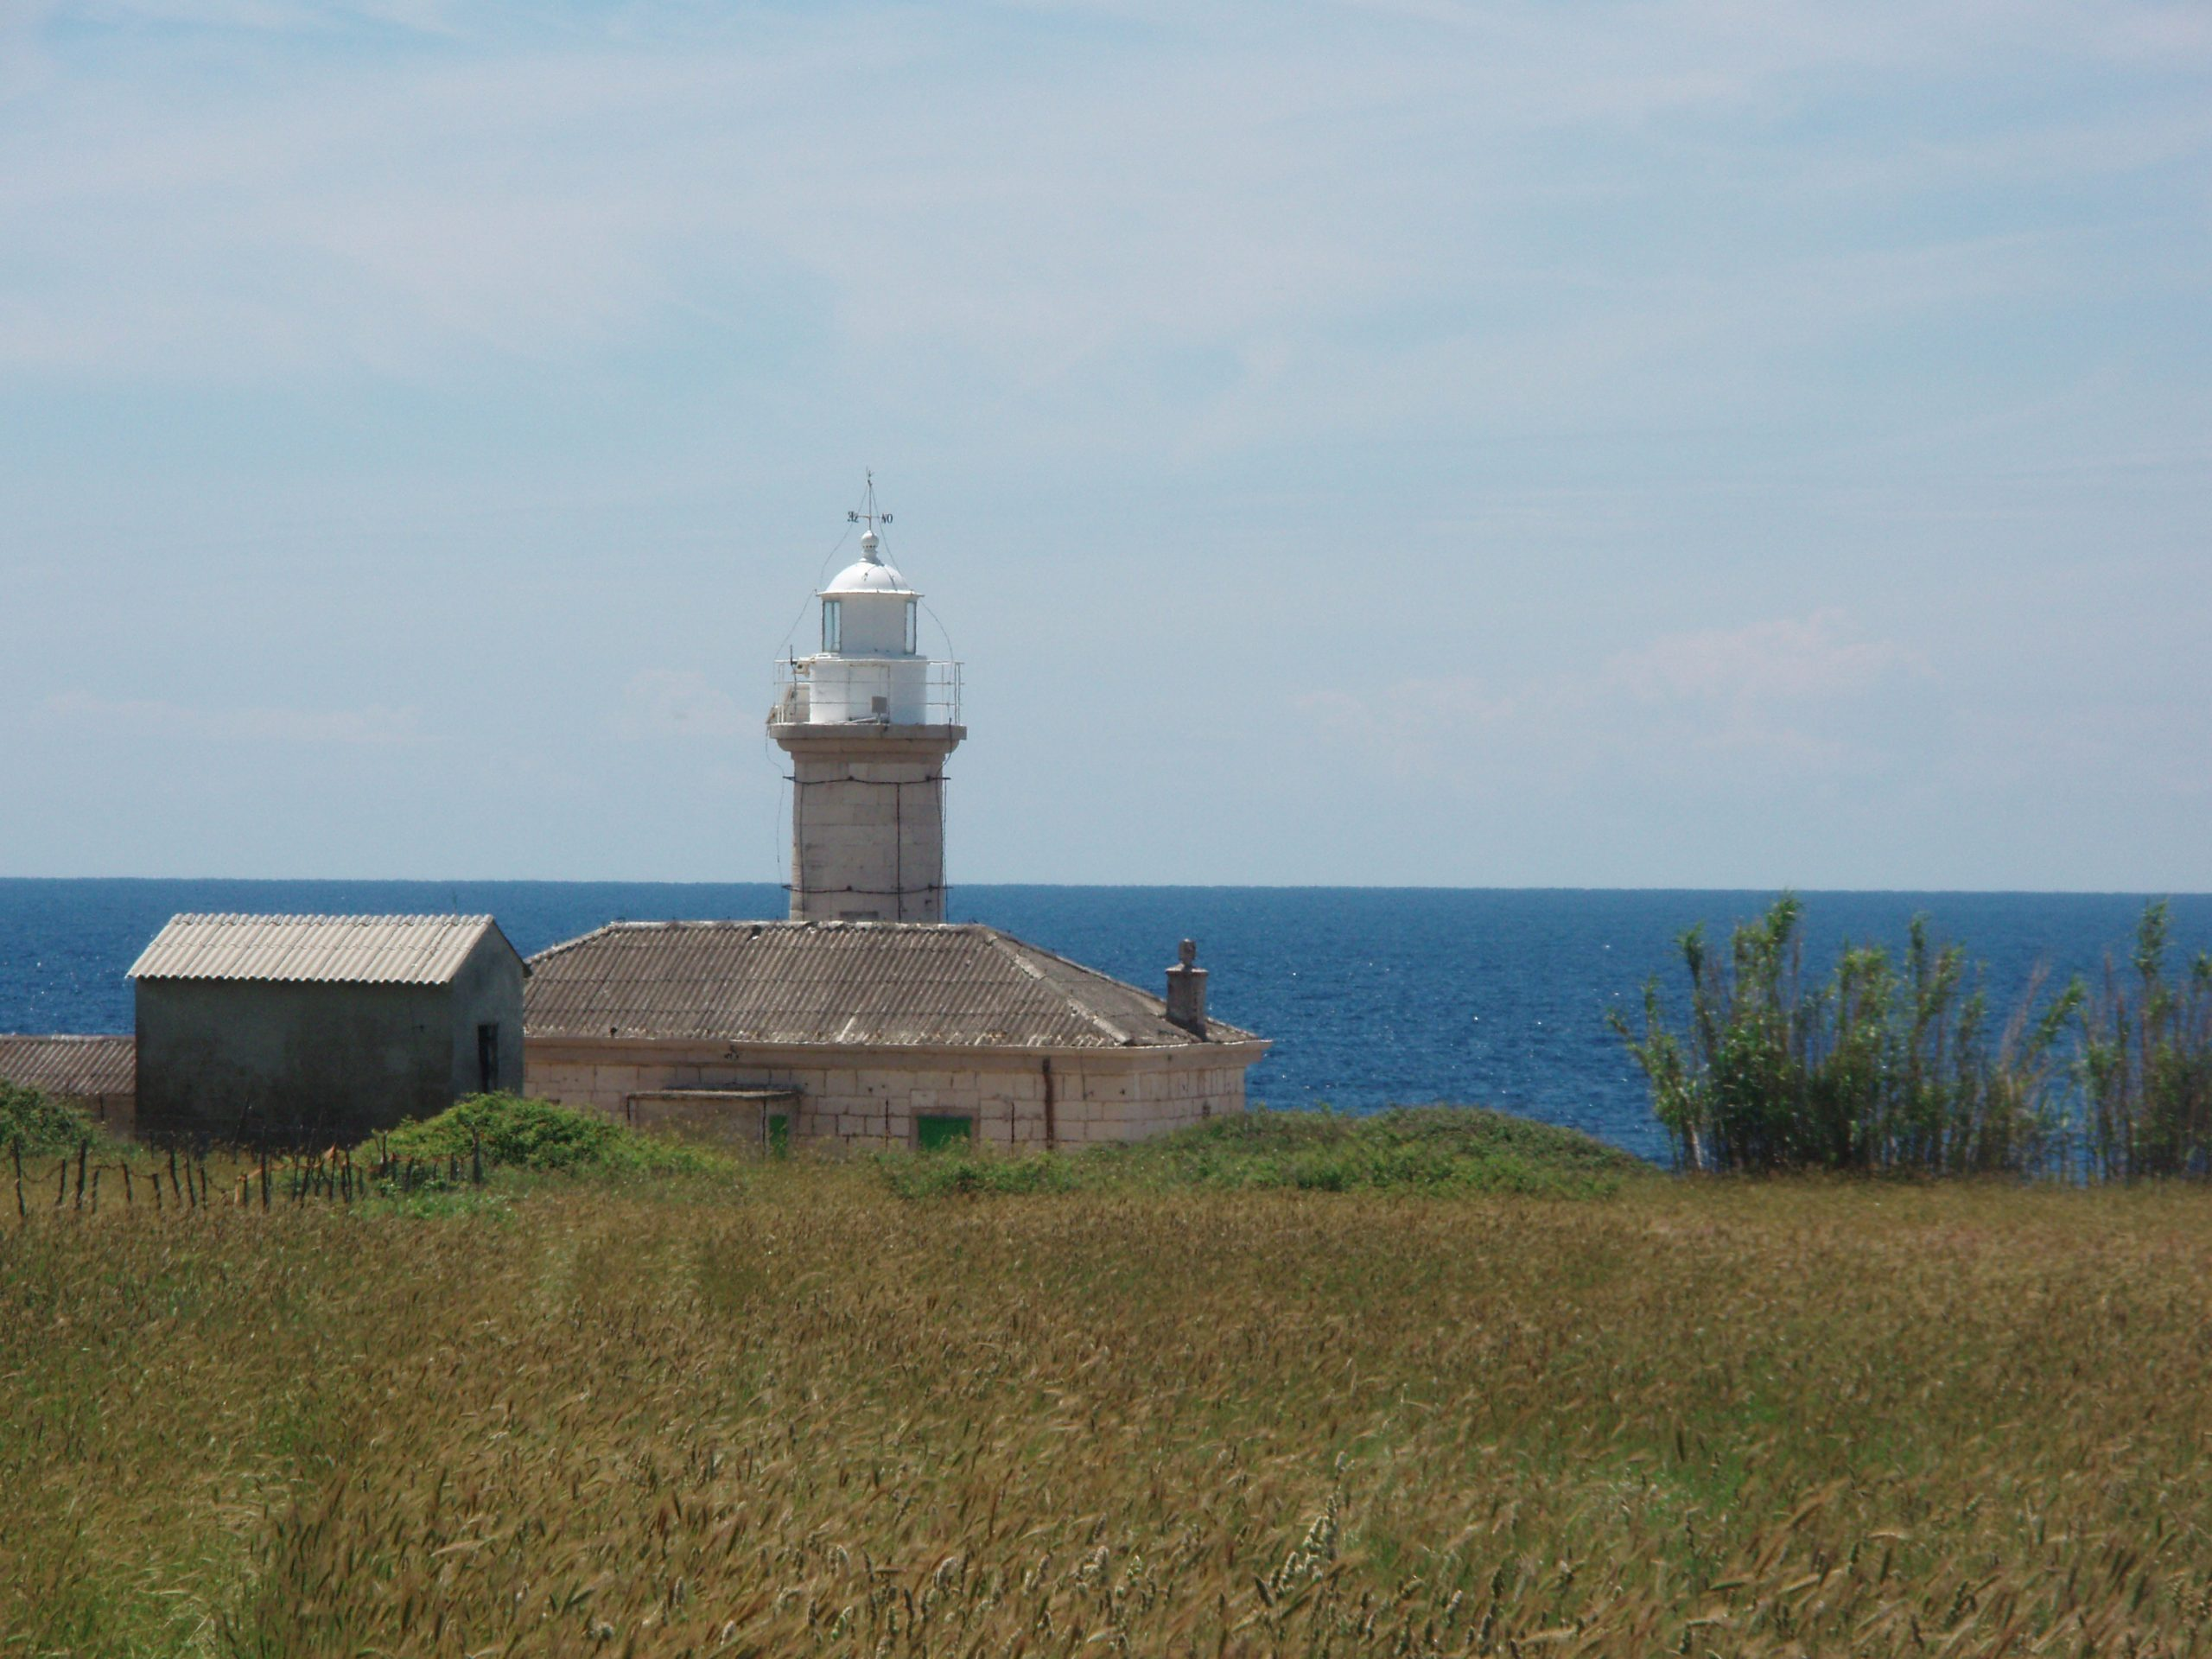 Vnetak Lighthouse on the southwestern part of Unije, automated and home to a flock of sheep. The poignant smell of sheep dung washes over you as you come near.